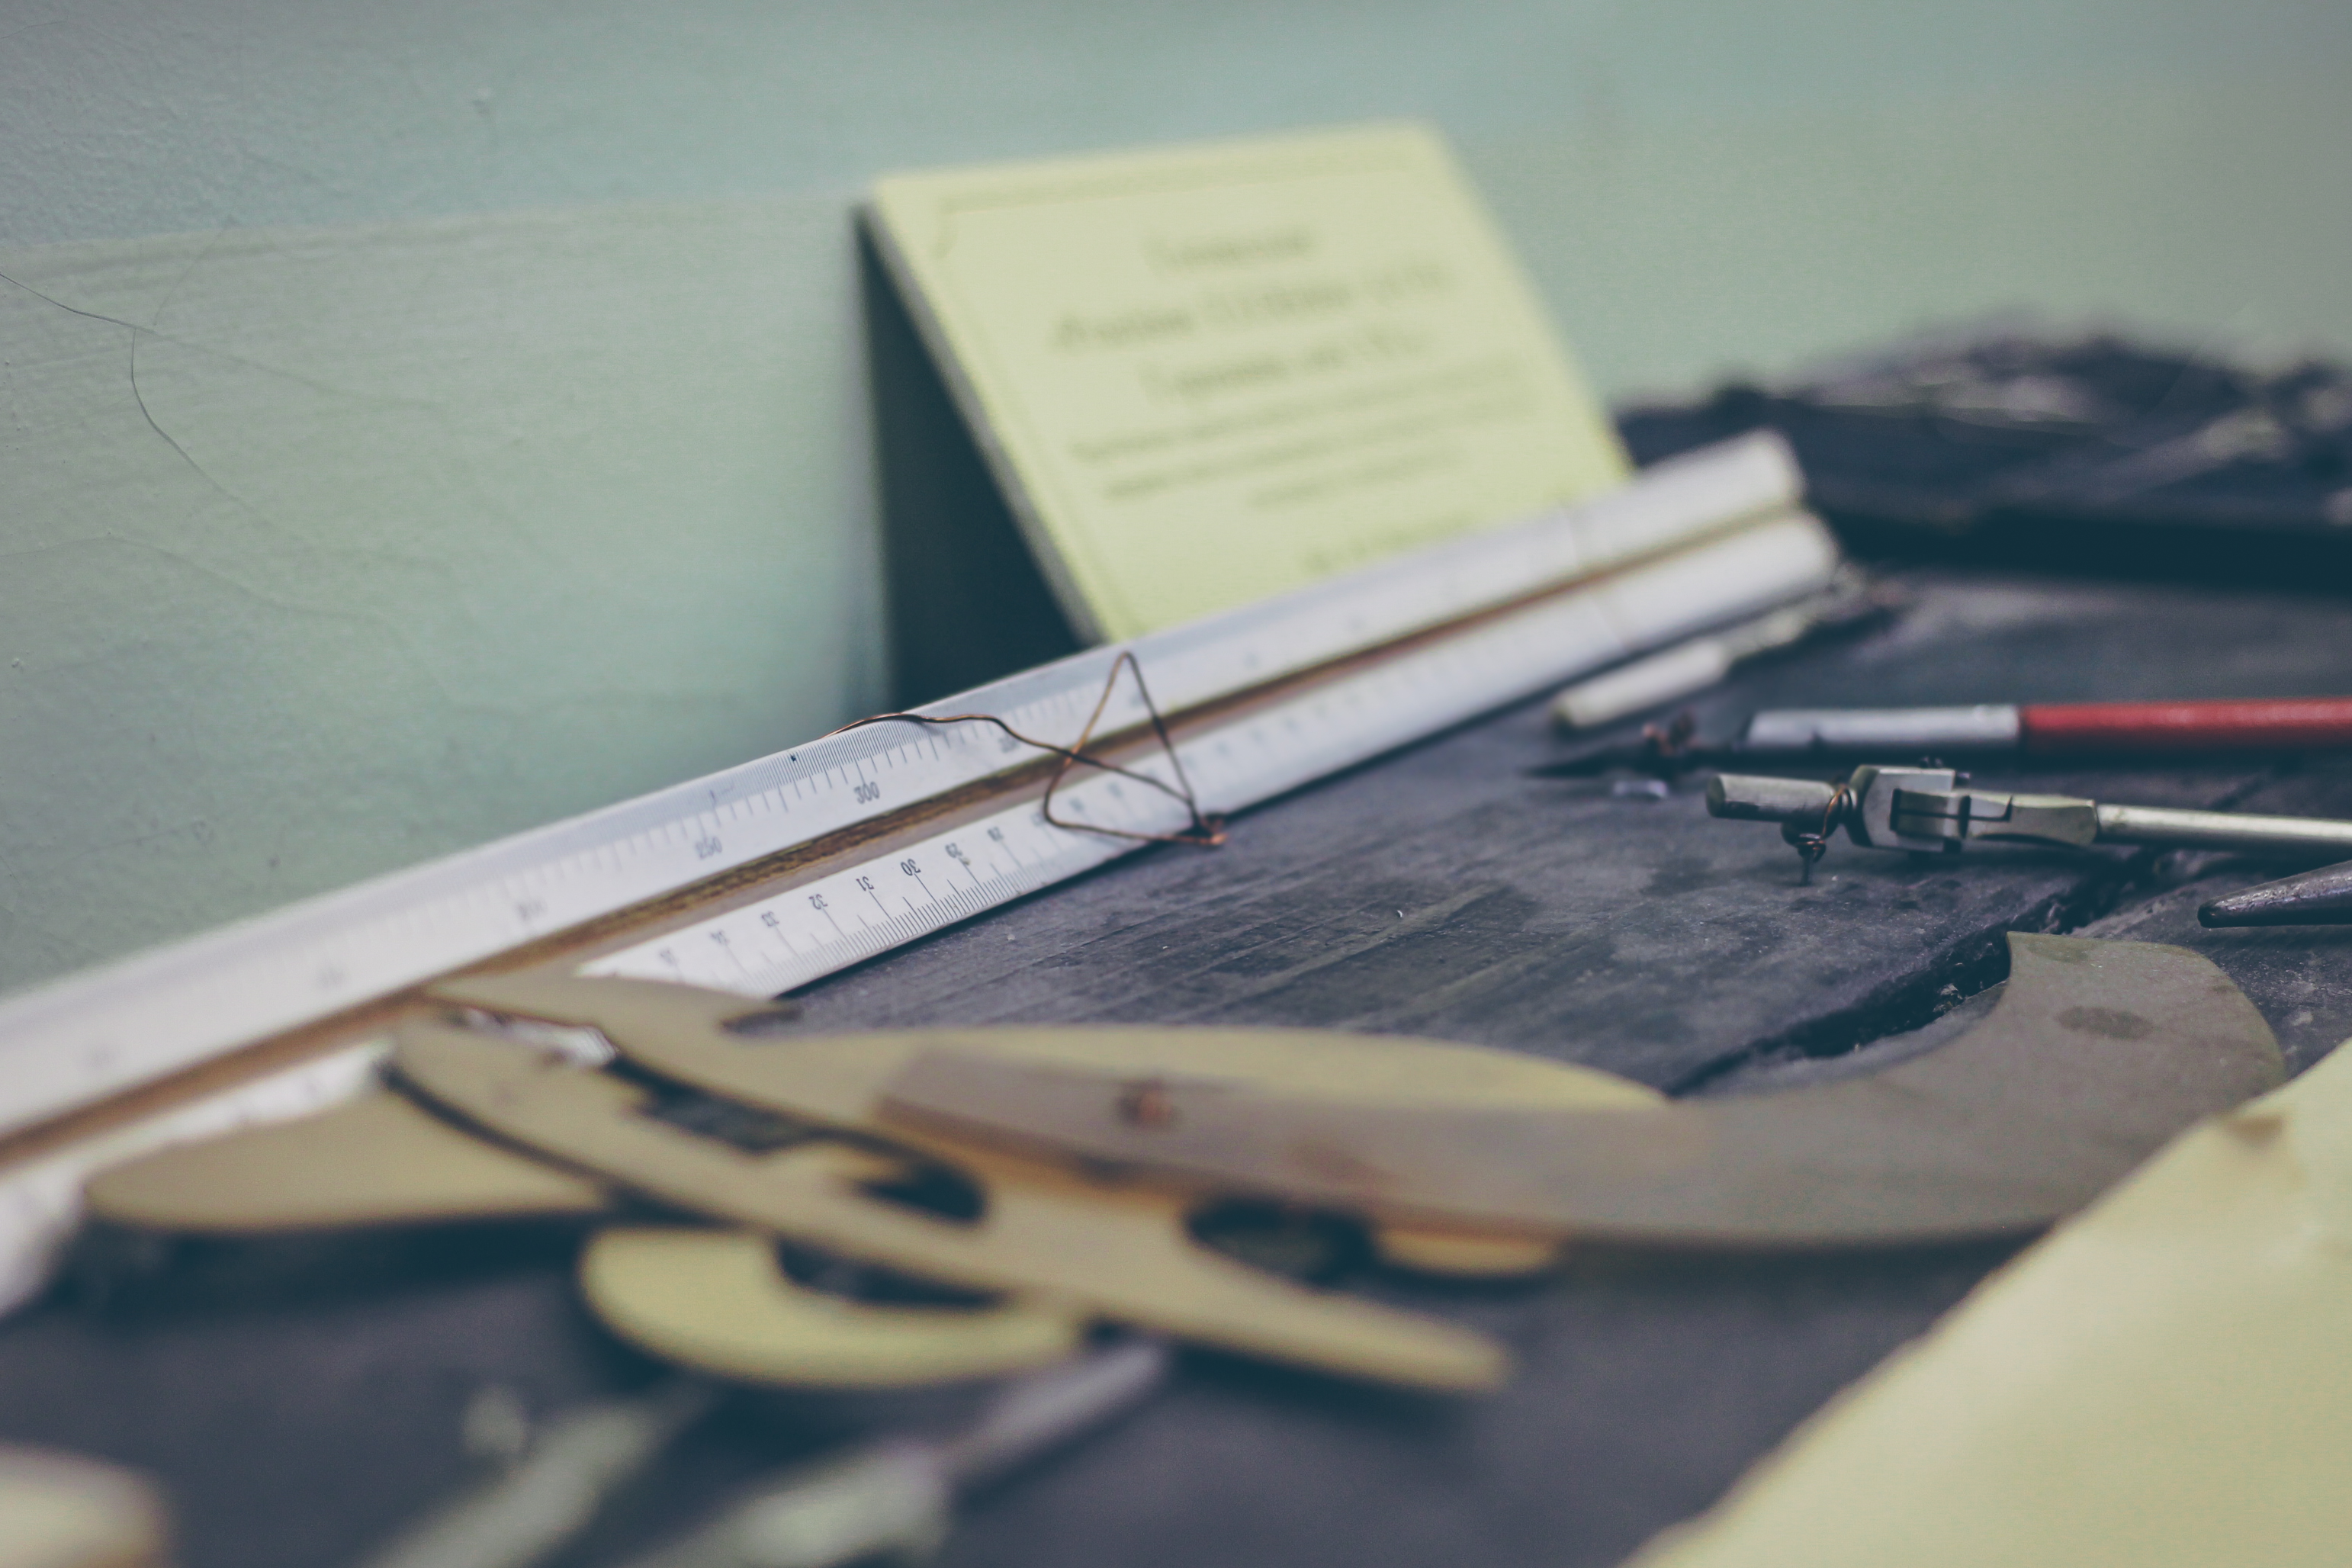 Photo of blueprints on desk by Szolkin